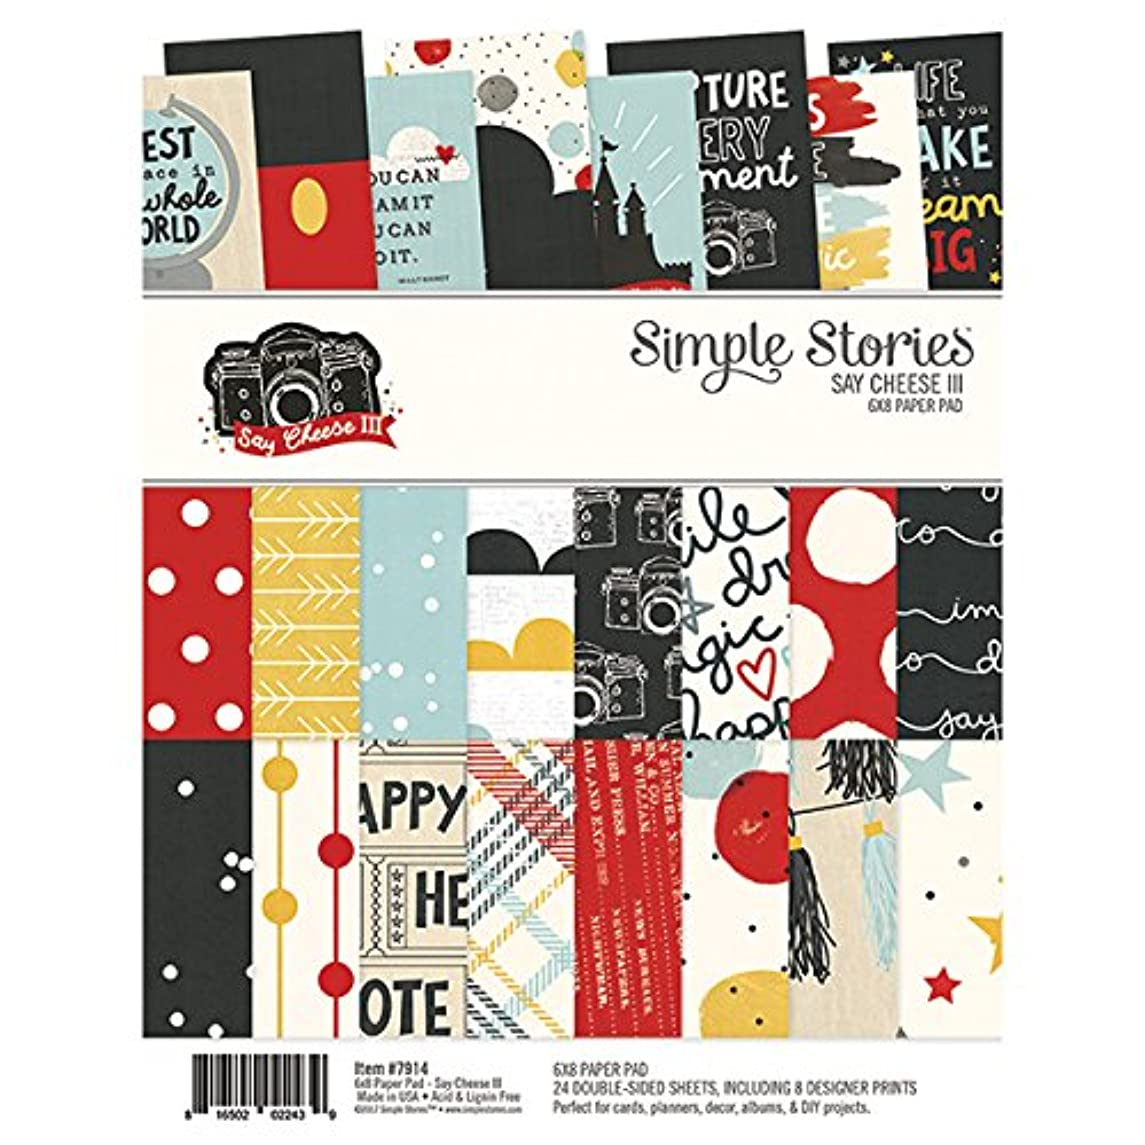 Simple Stories Say Cheese III 6x8 Paper Pad